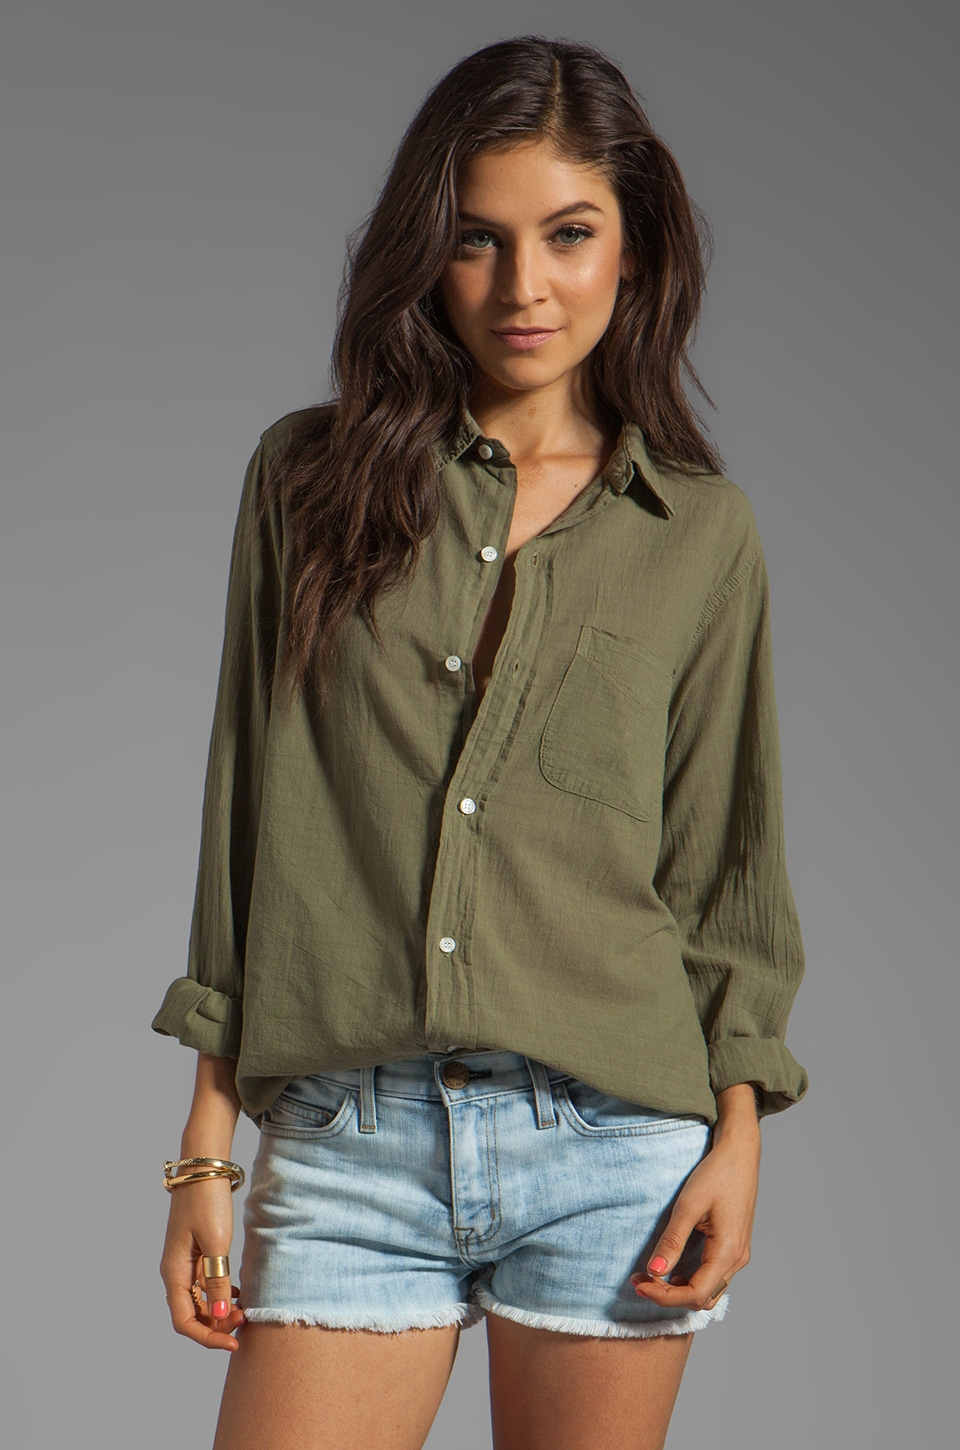 Current/Elliott The Prep School Shirt in Army Green